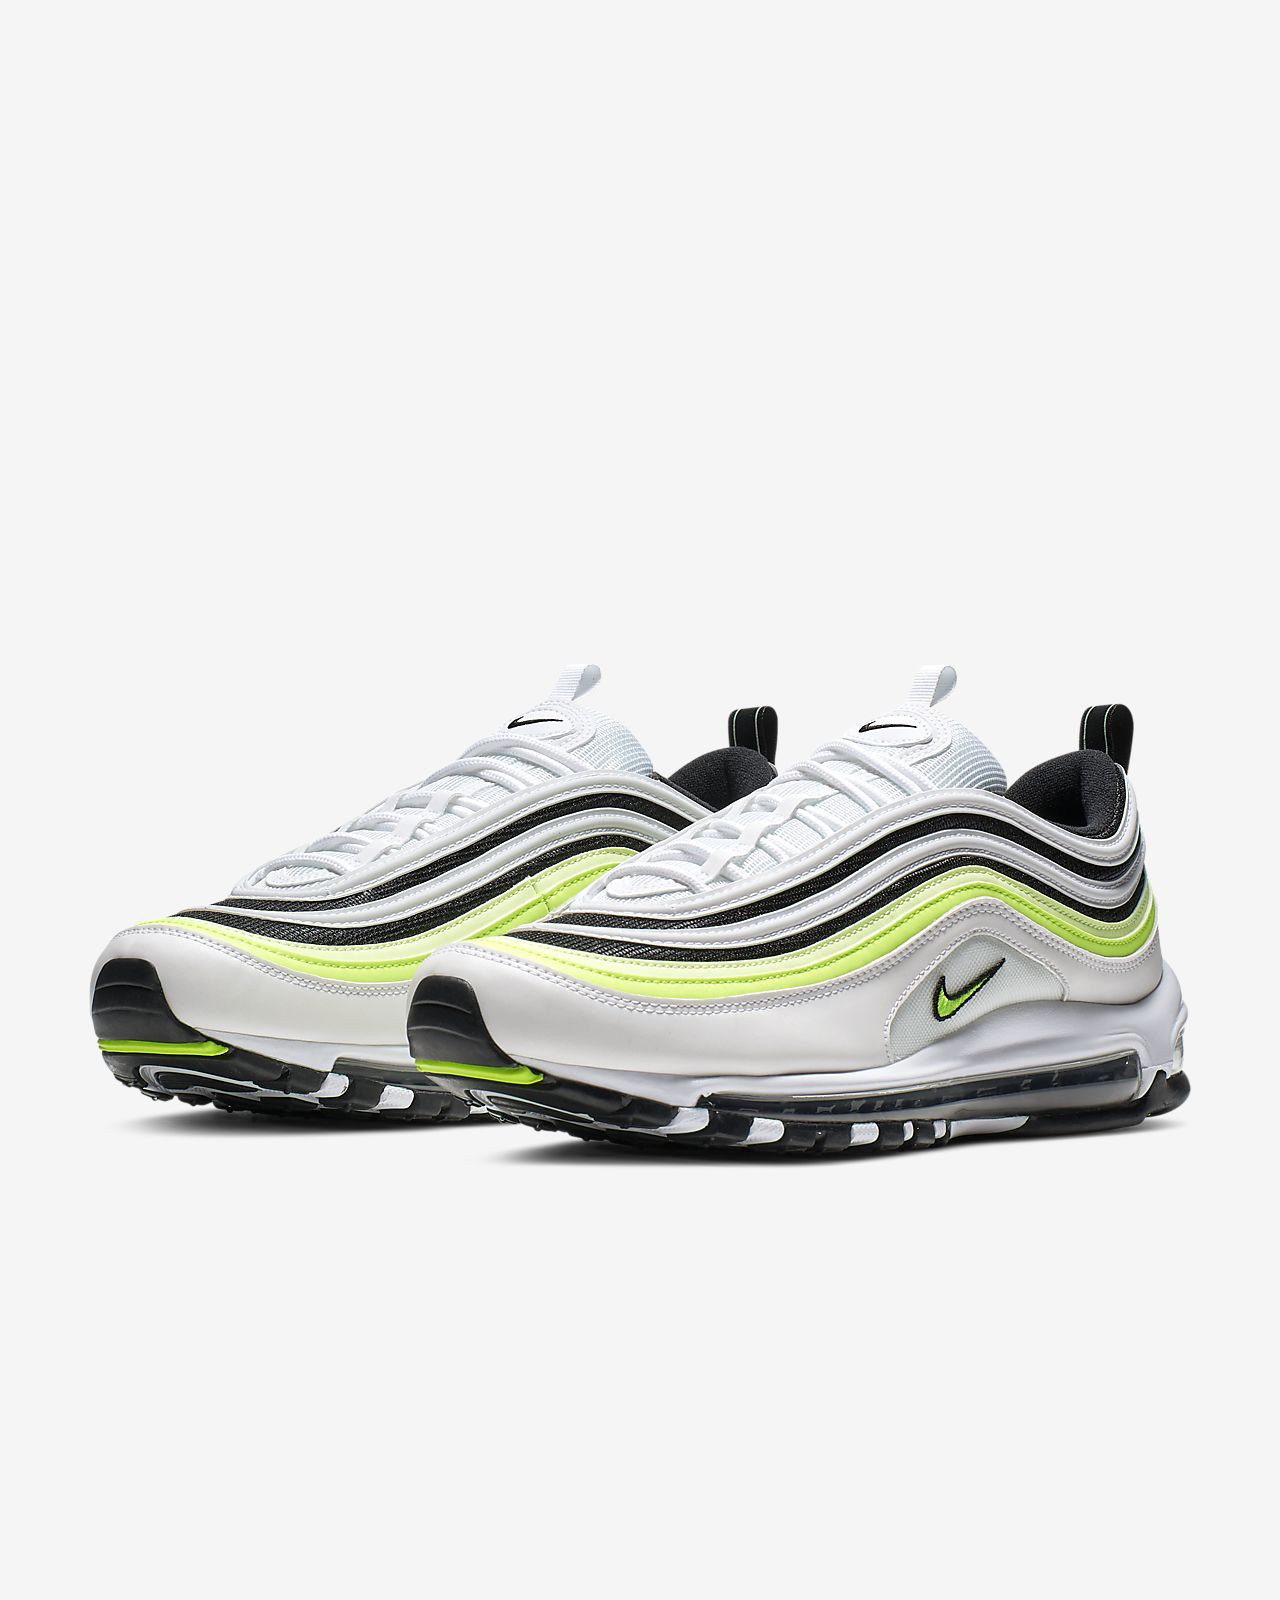 huge selection of 68e51 4e8b2 ... Nike Air Max 97 SE-sko til mænd